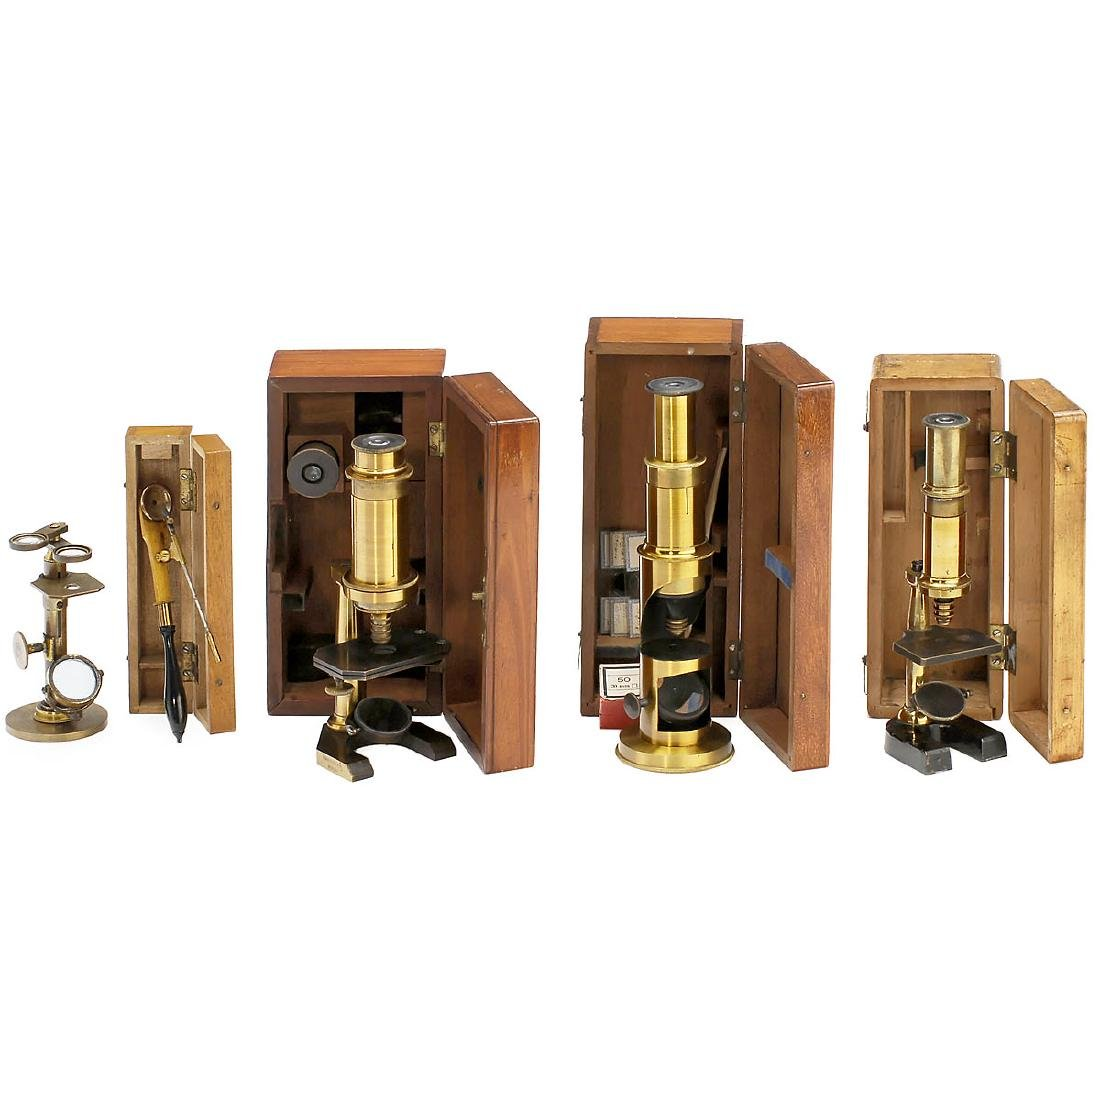 5 Small Brass Microscopes, 1800-1880